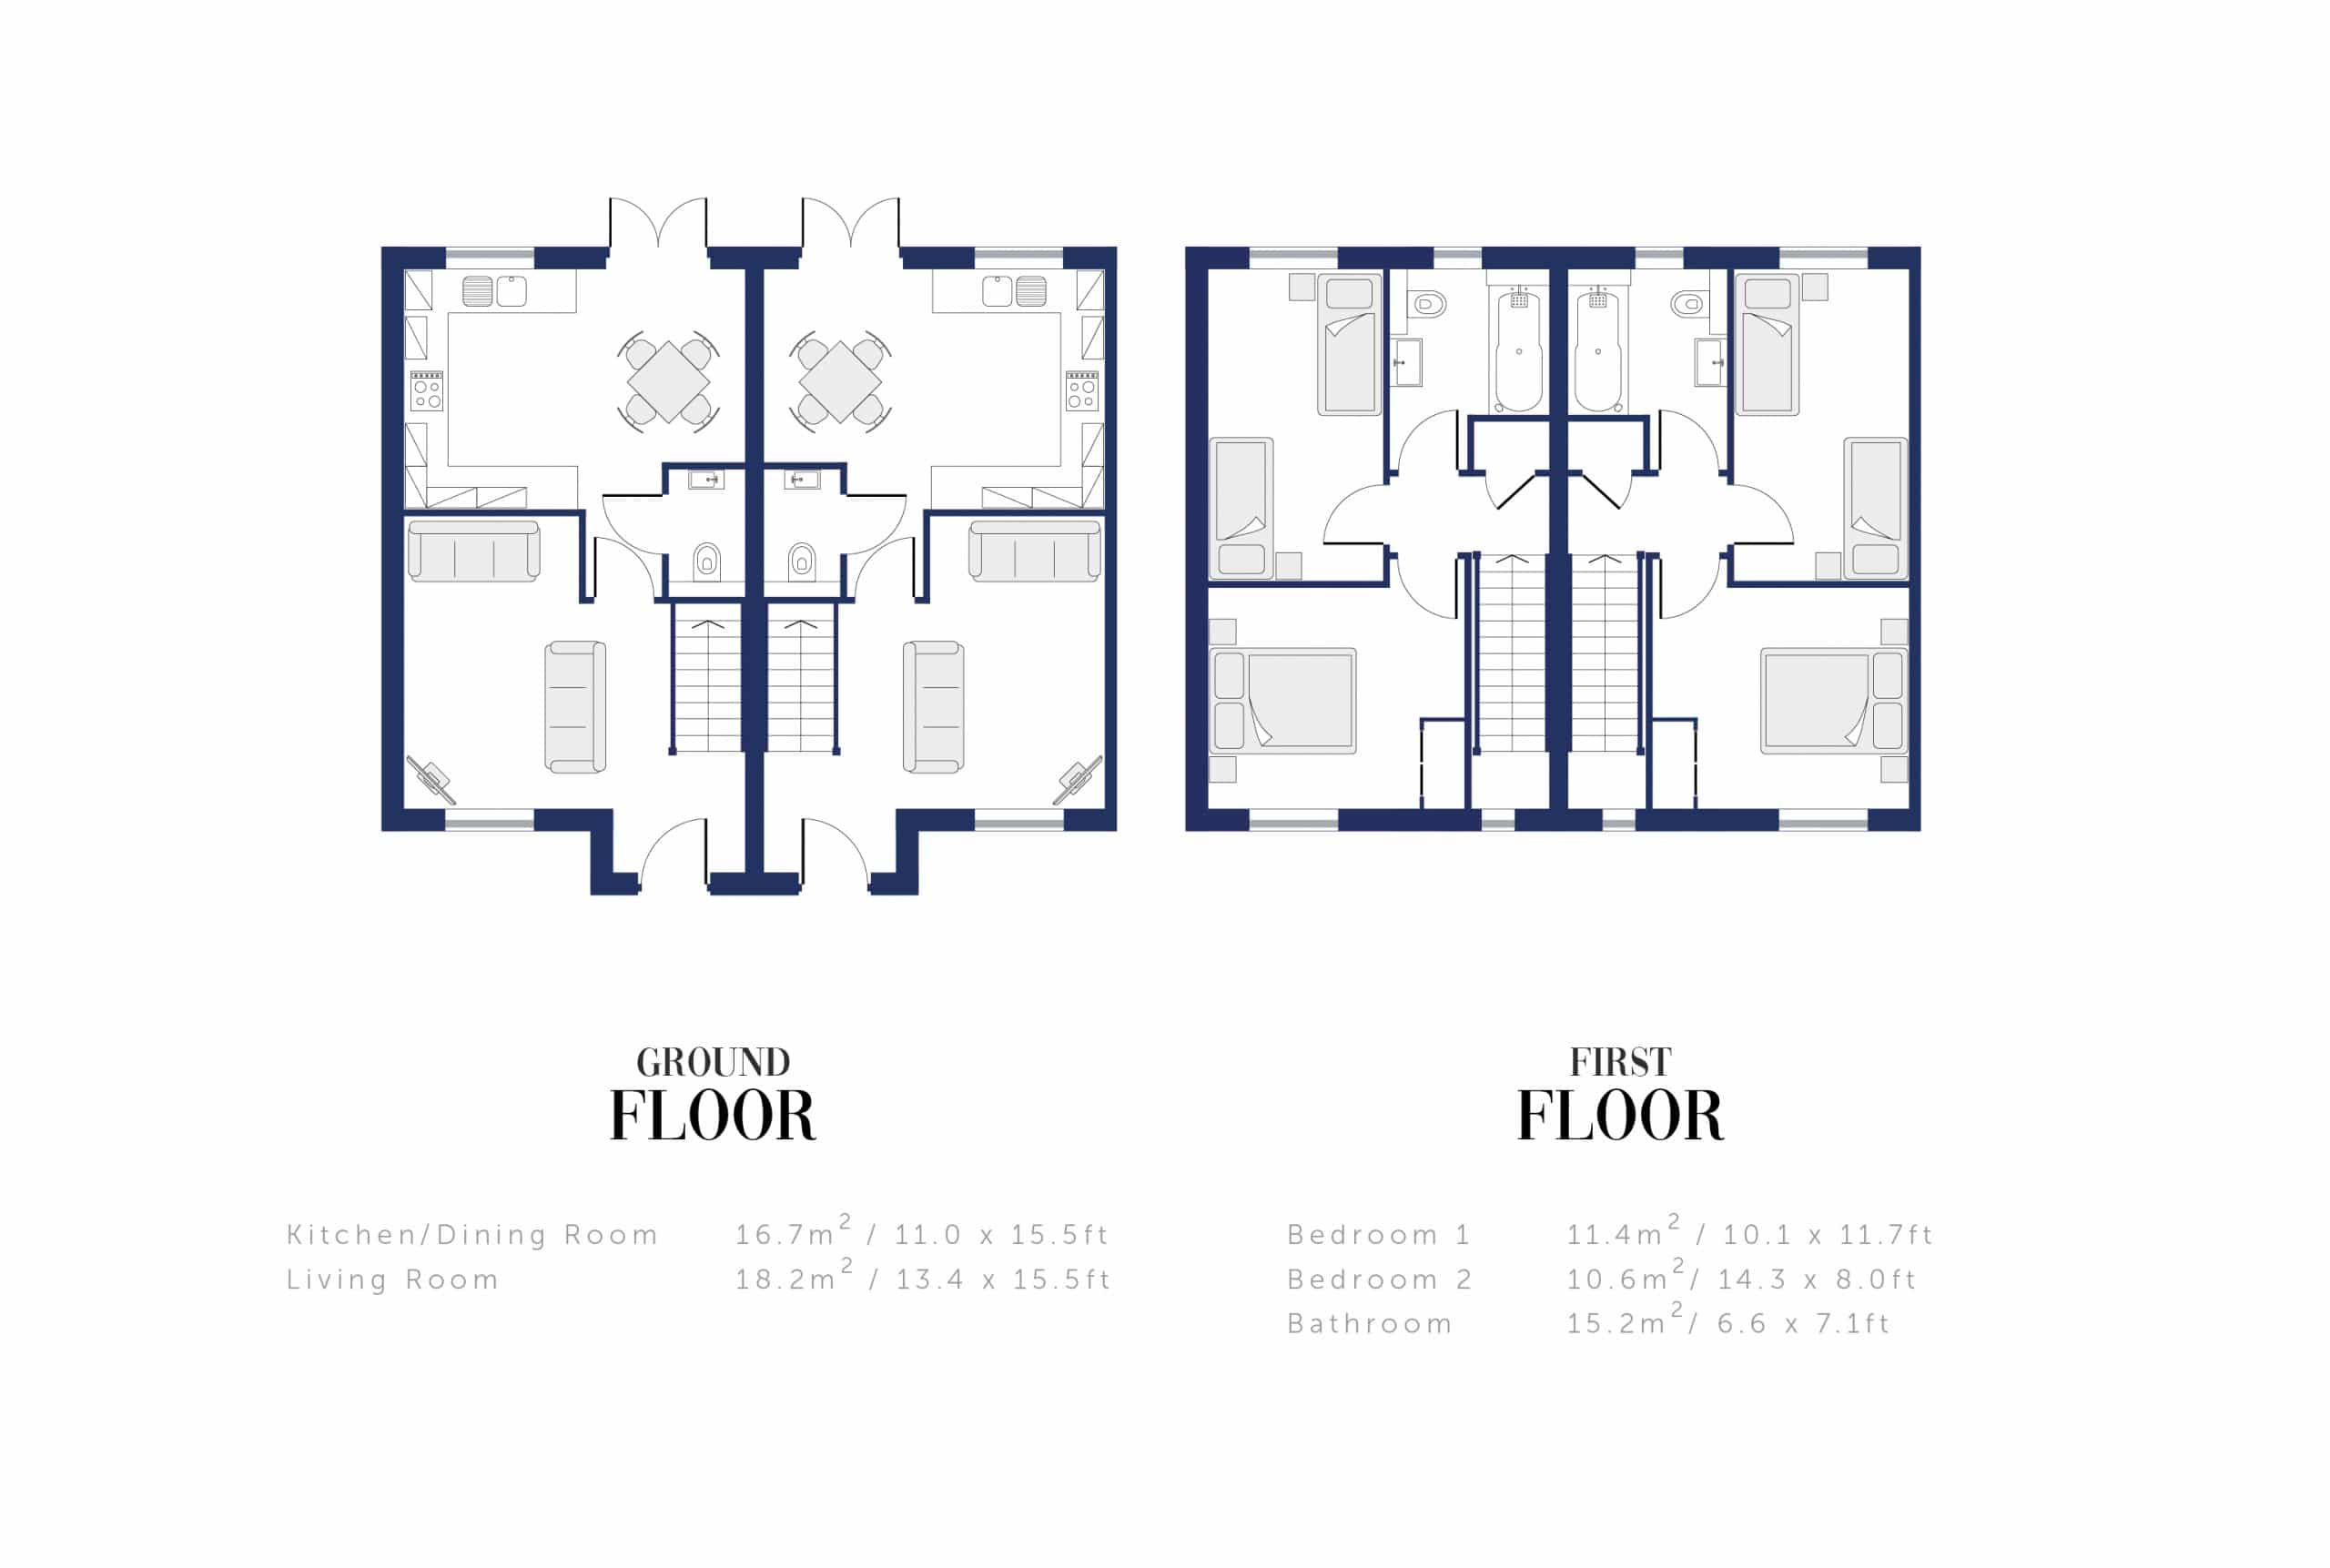 Sunningdale Millers Floor Plan and Sizing for WEB2